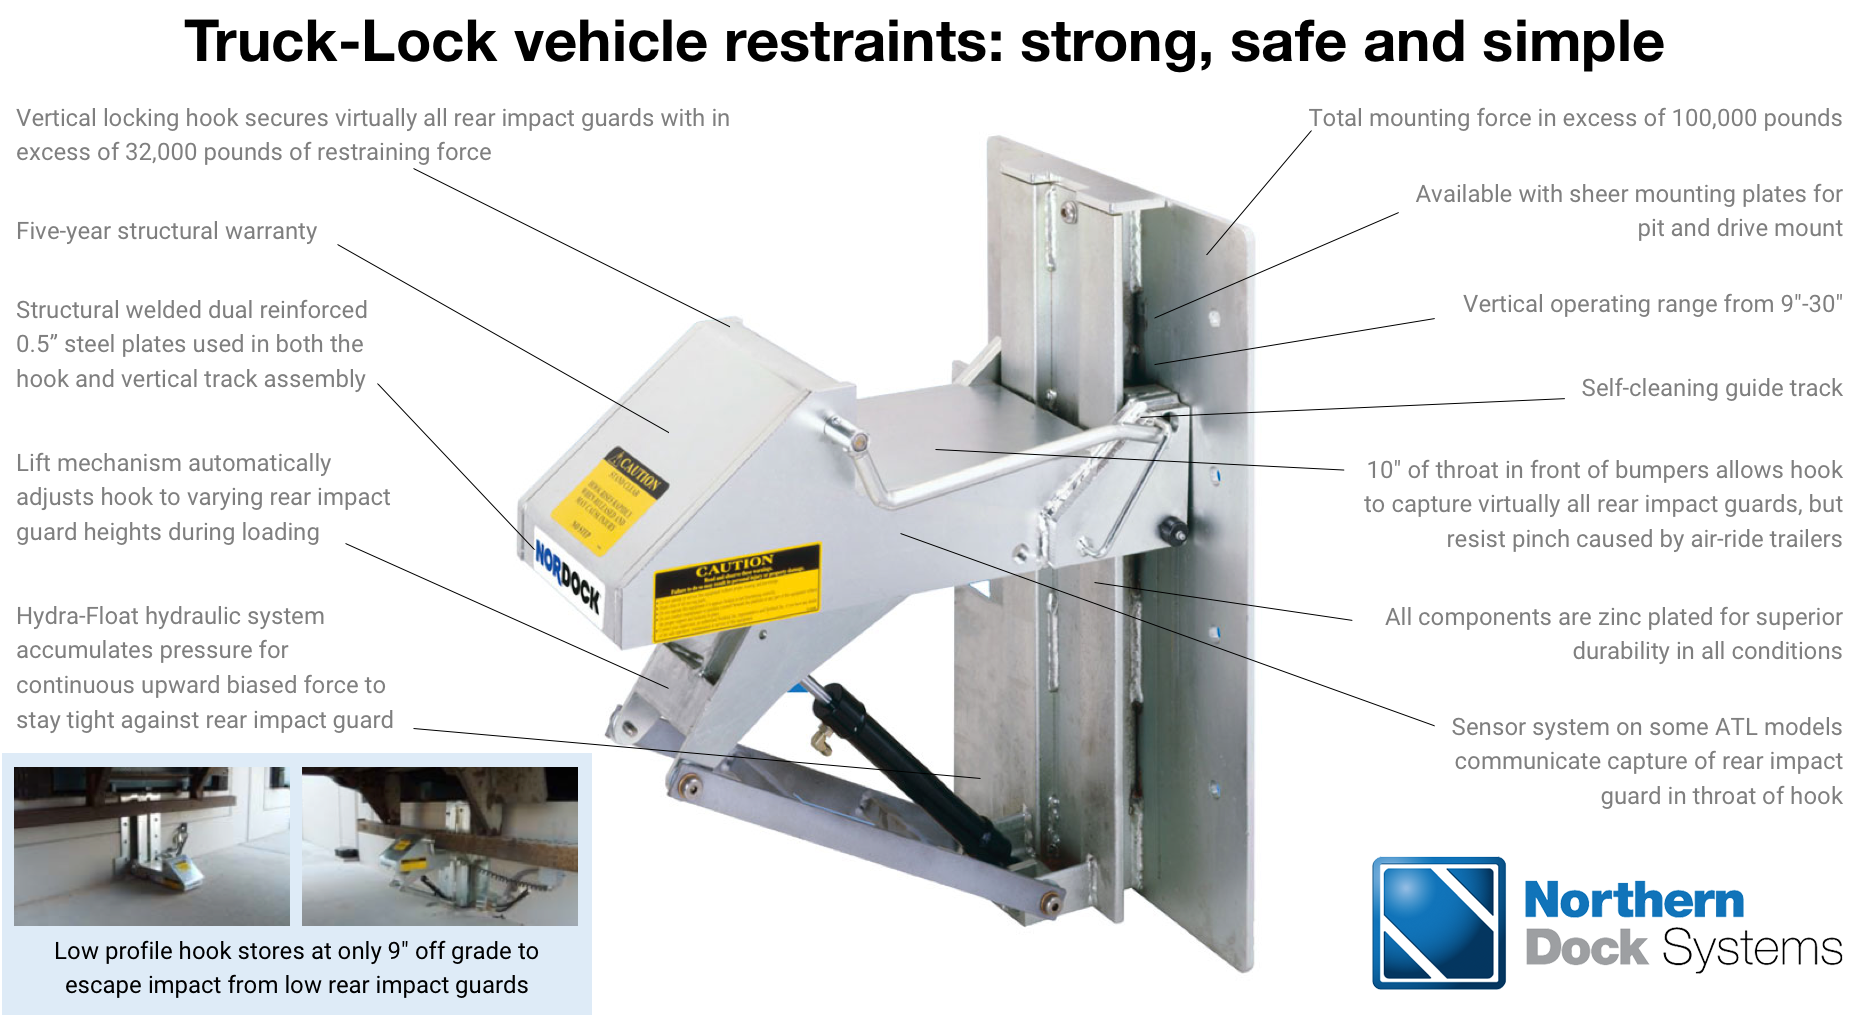 Truck-Lock vehicle restraints